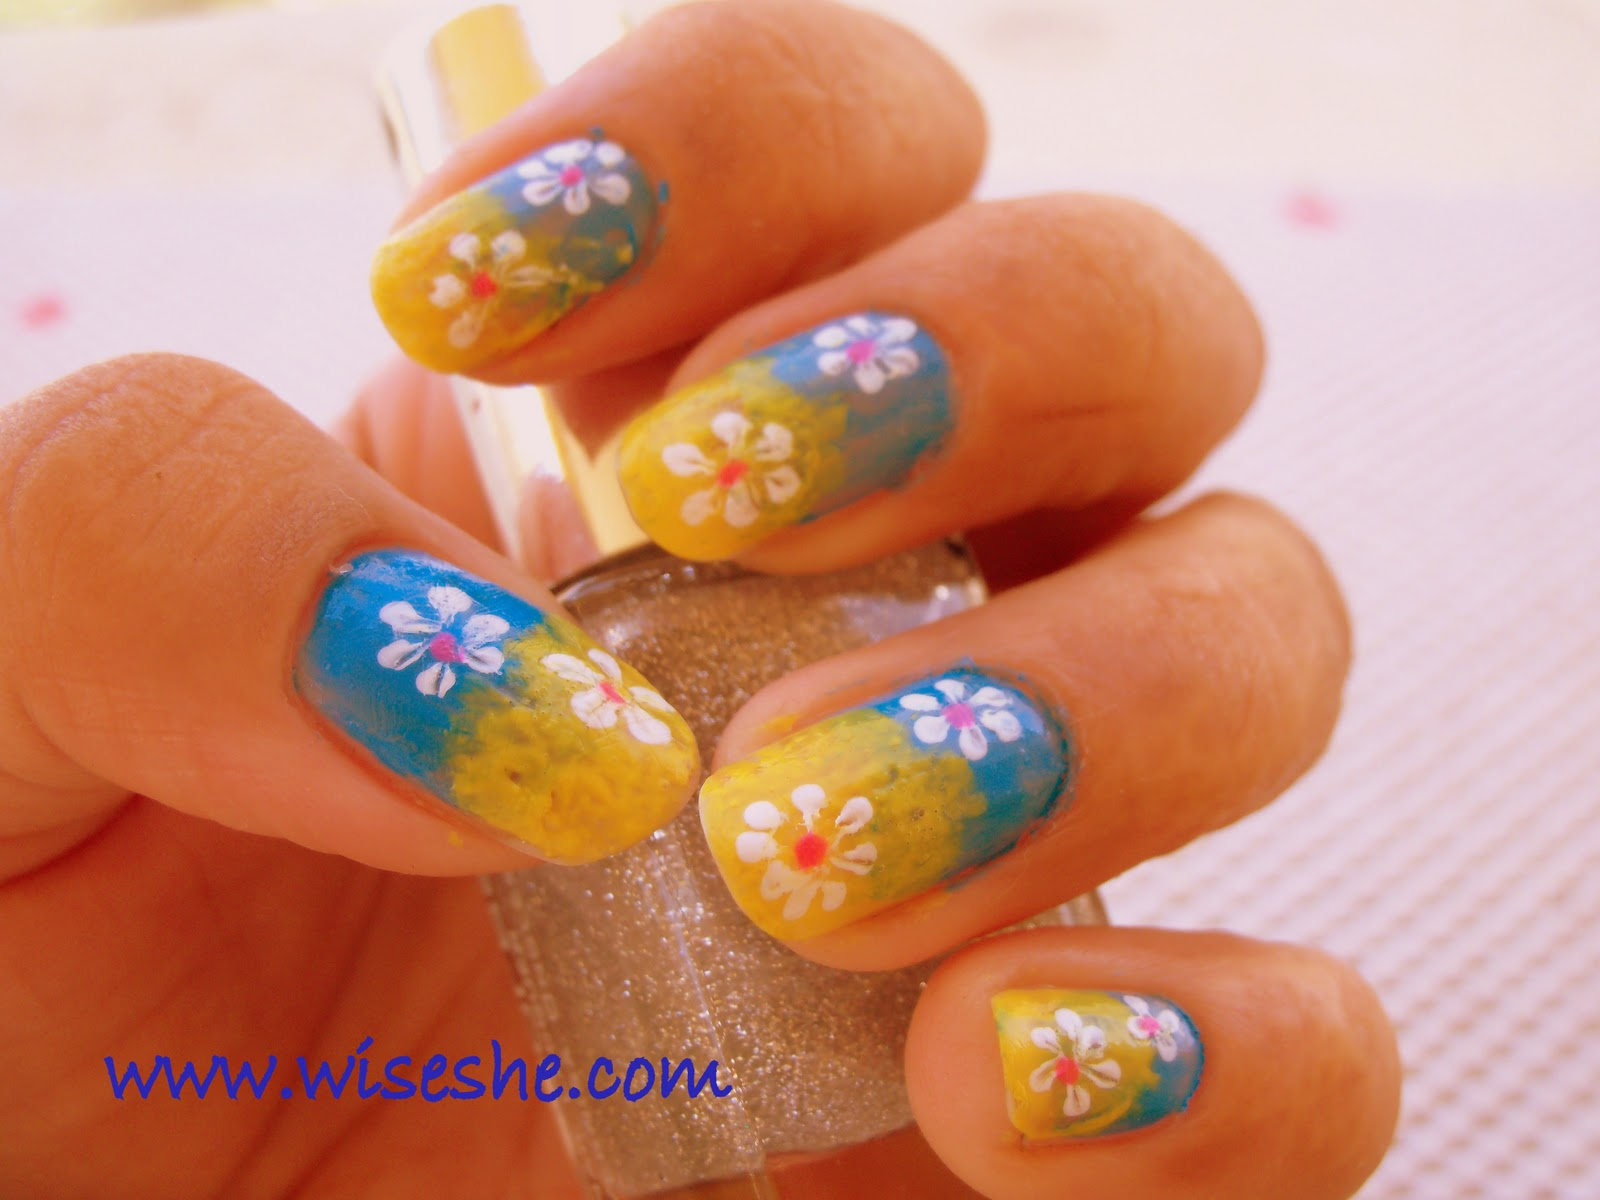 Sponge Nail Art Free Hand Nail Art Designs In Yellow And Blue